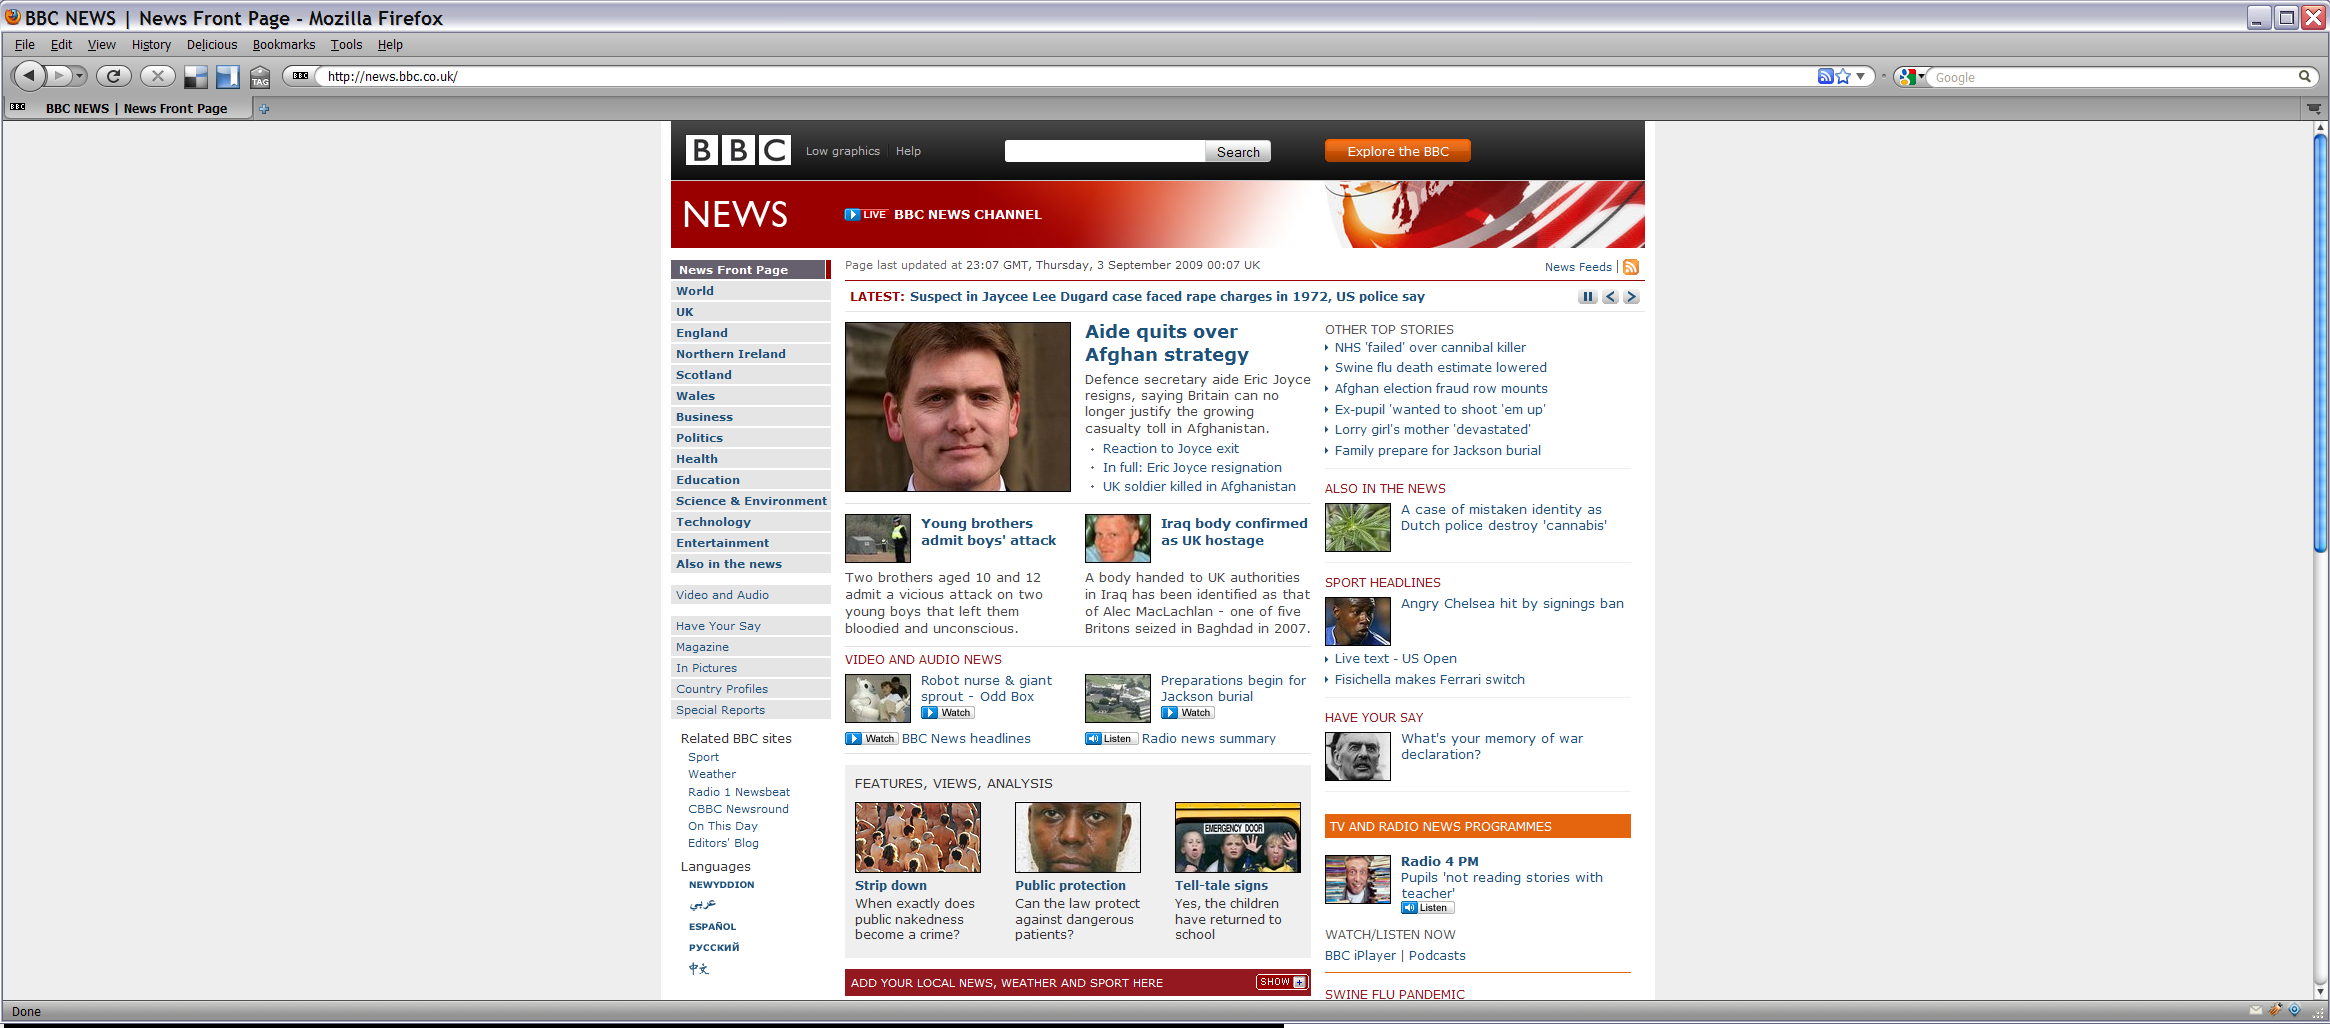 BBC news shown at a 2300 pixel wide resolution, lots of white space to the left and right of the content.